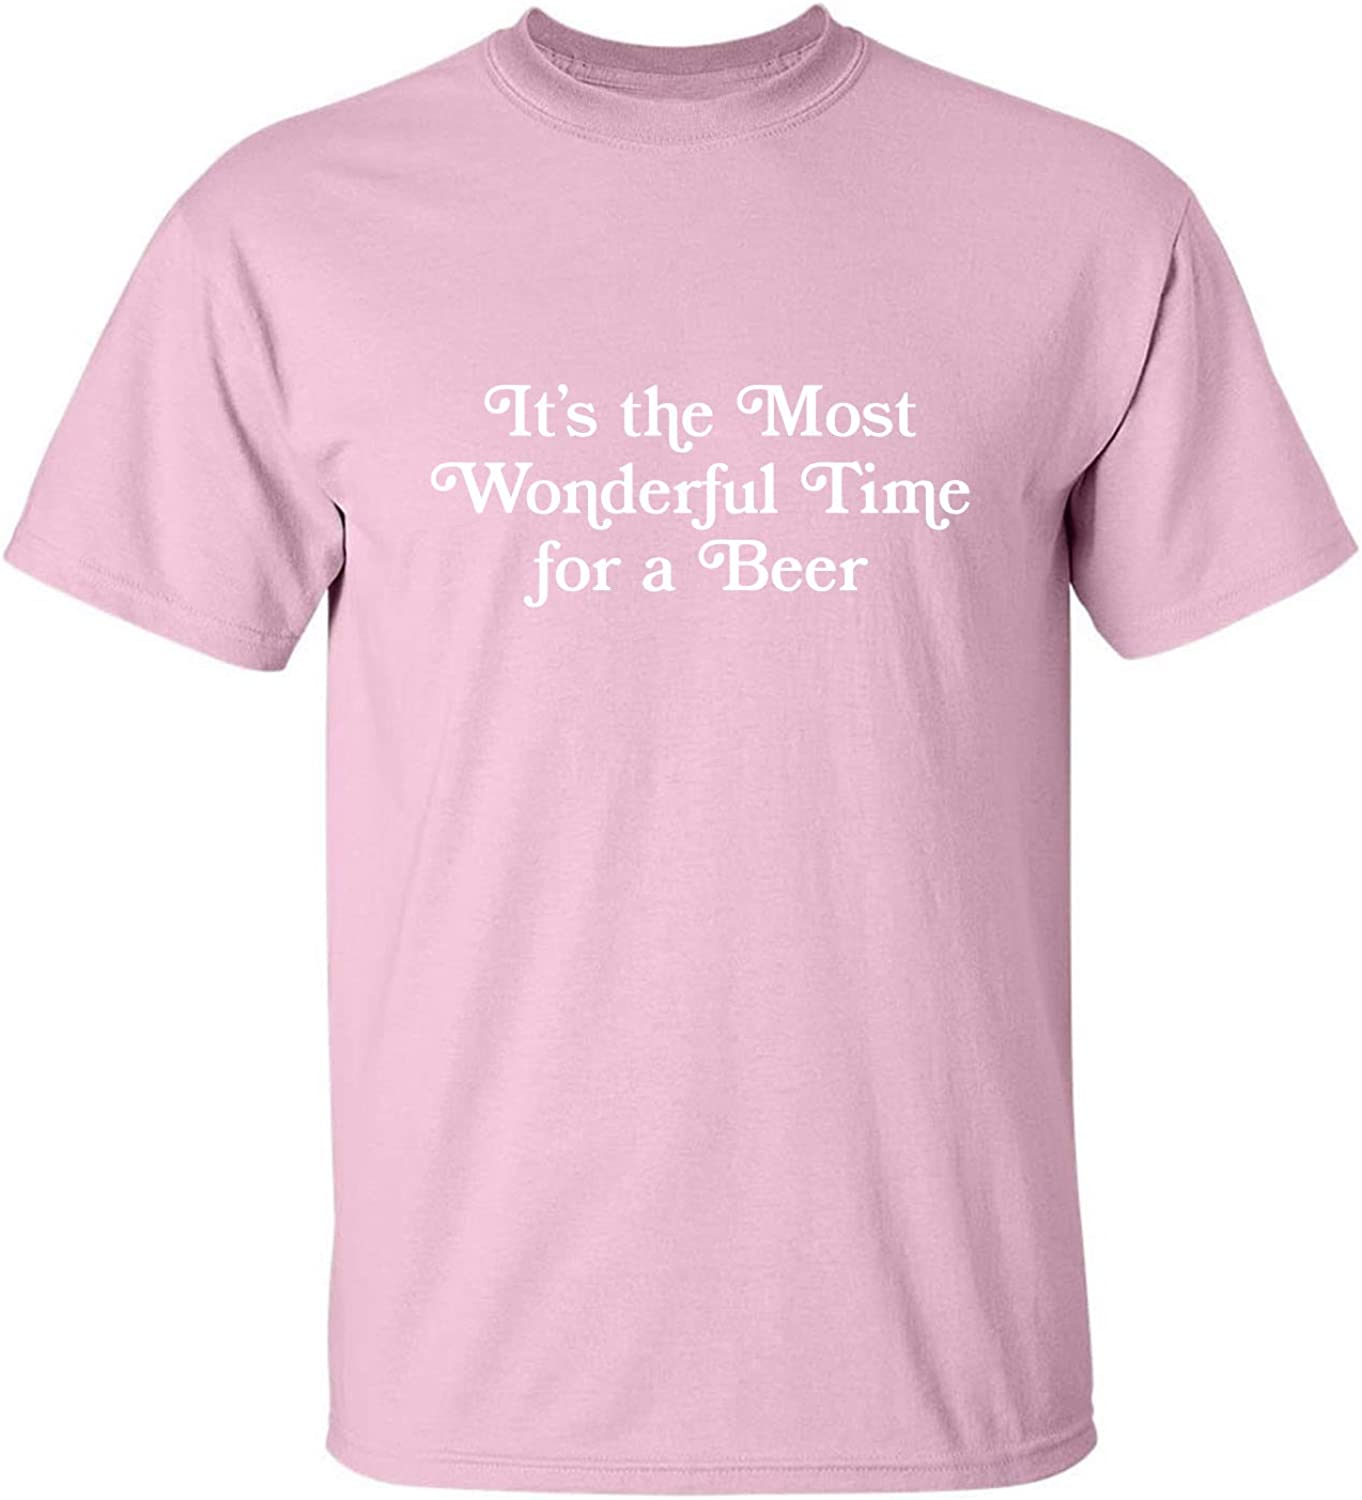 It's The Most Wonderful Time Adult T-Shirt in Pink - XXXX-Large